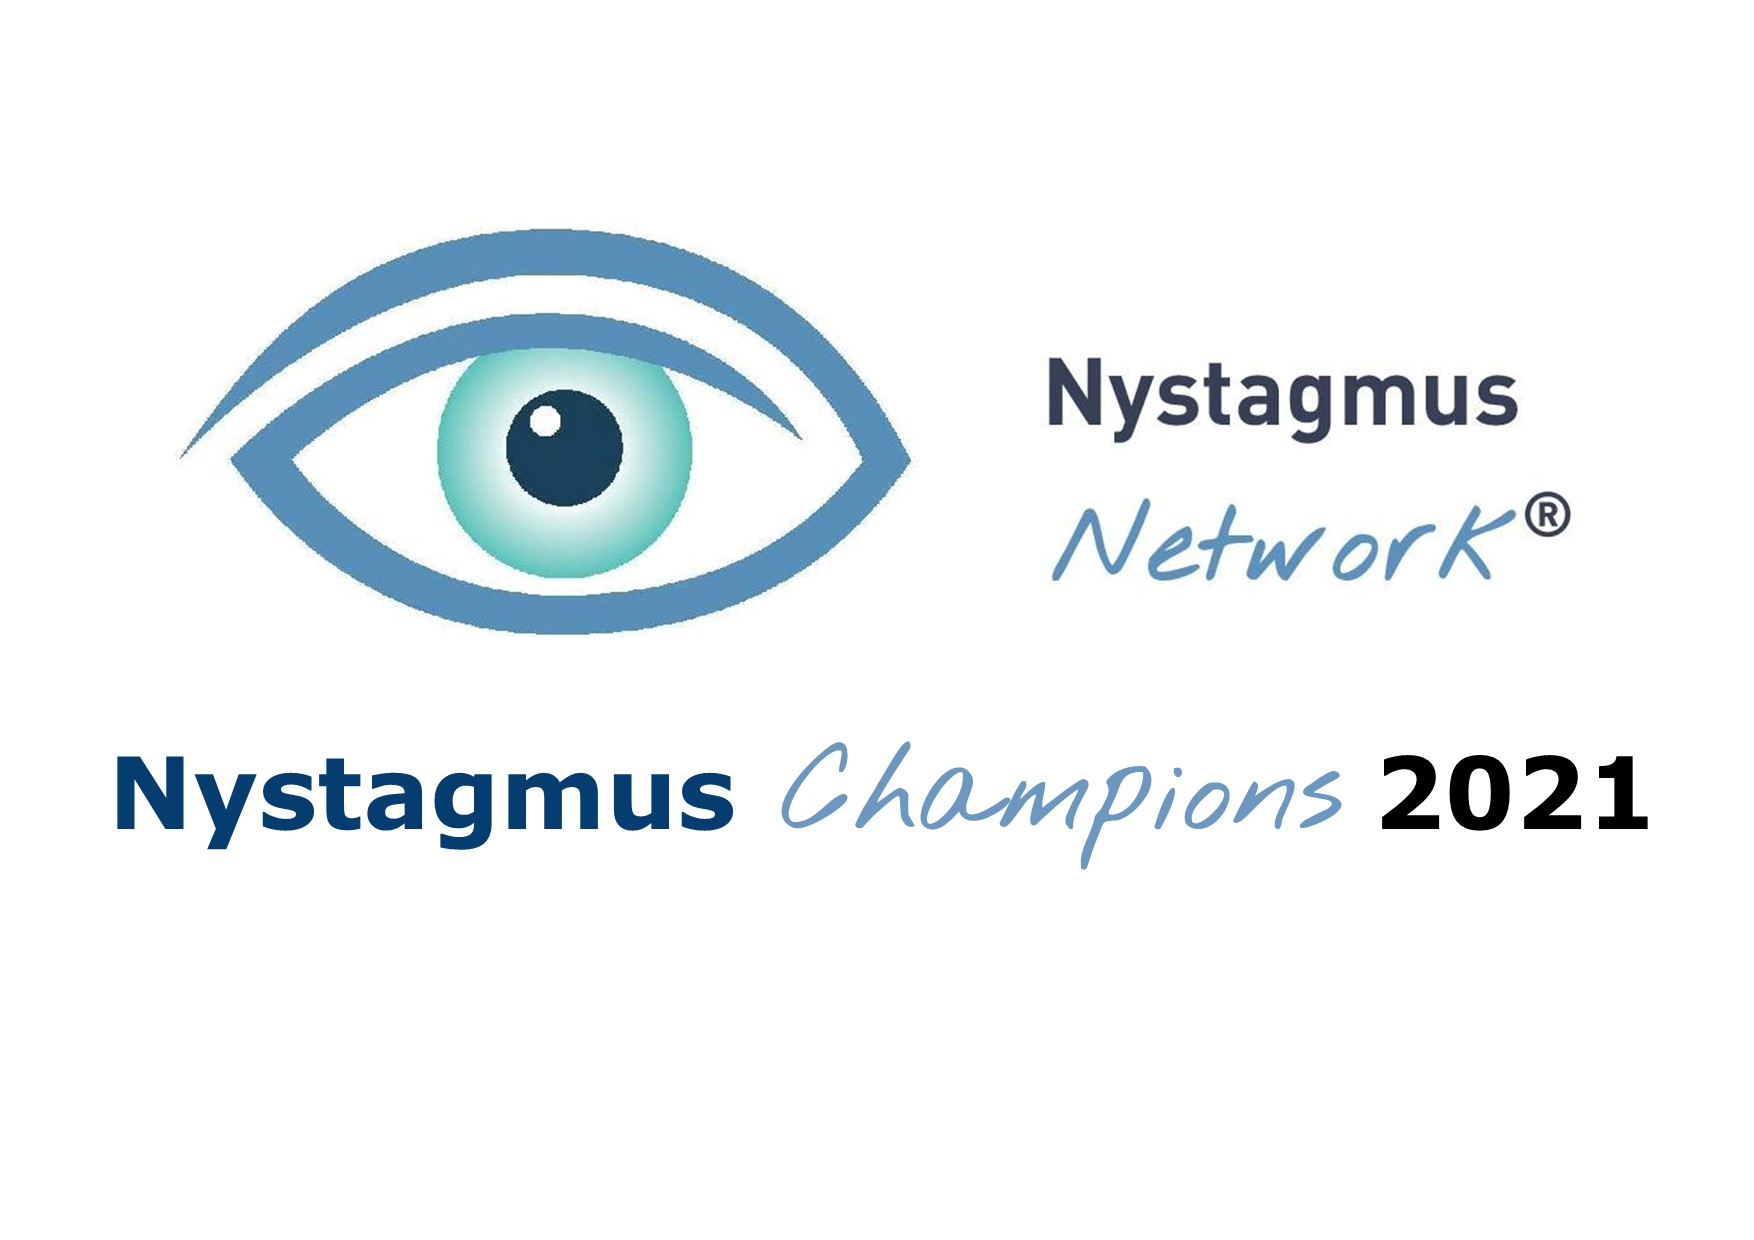 The Nystagmus Champions of 2021